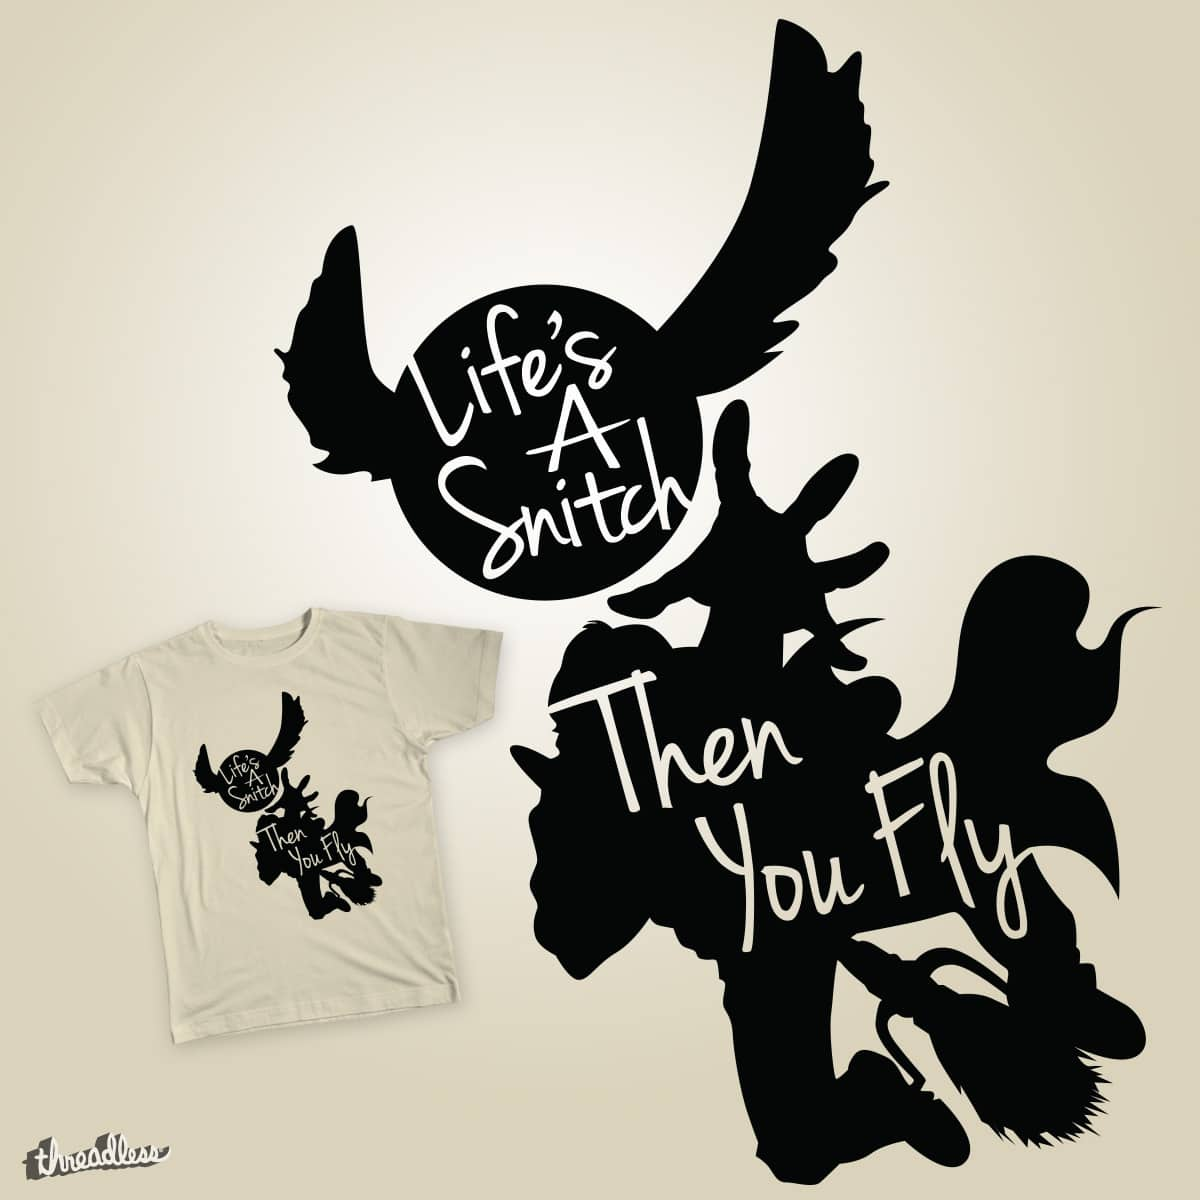 Life's a Snitch by SGMurphy on Threadless